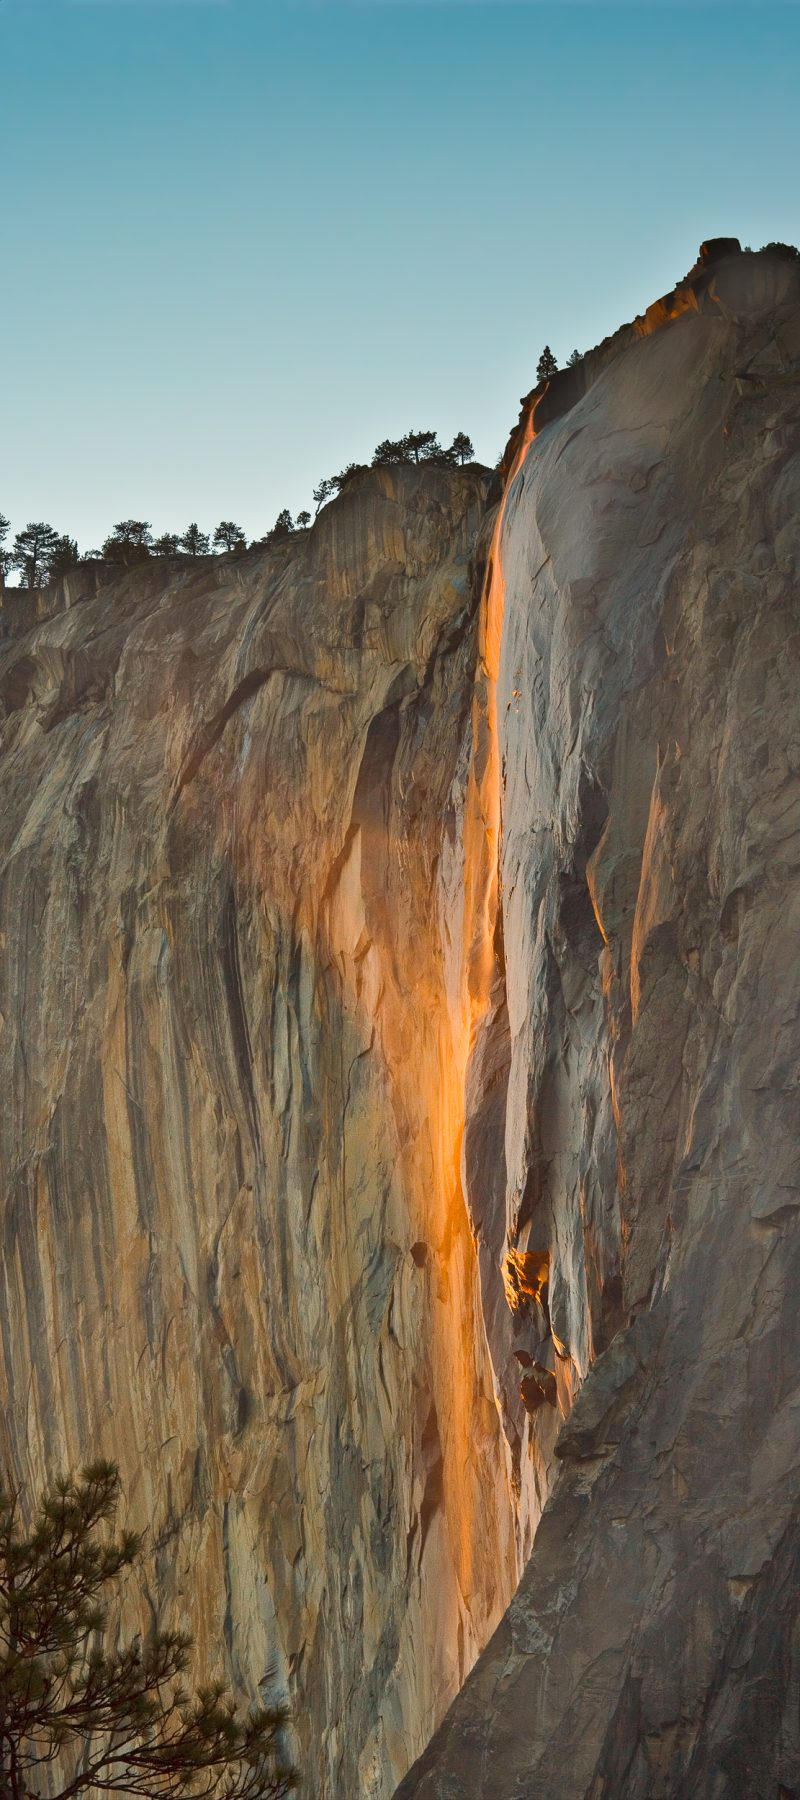 Ephemeral waterfall east face of El Capitan - Yosemite National Park